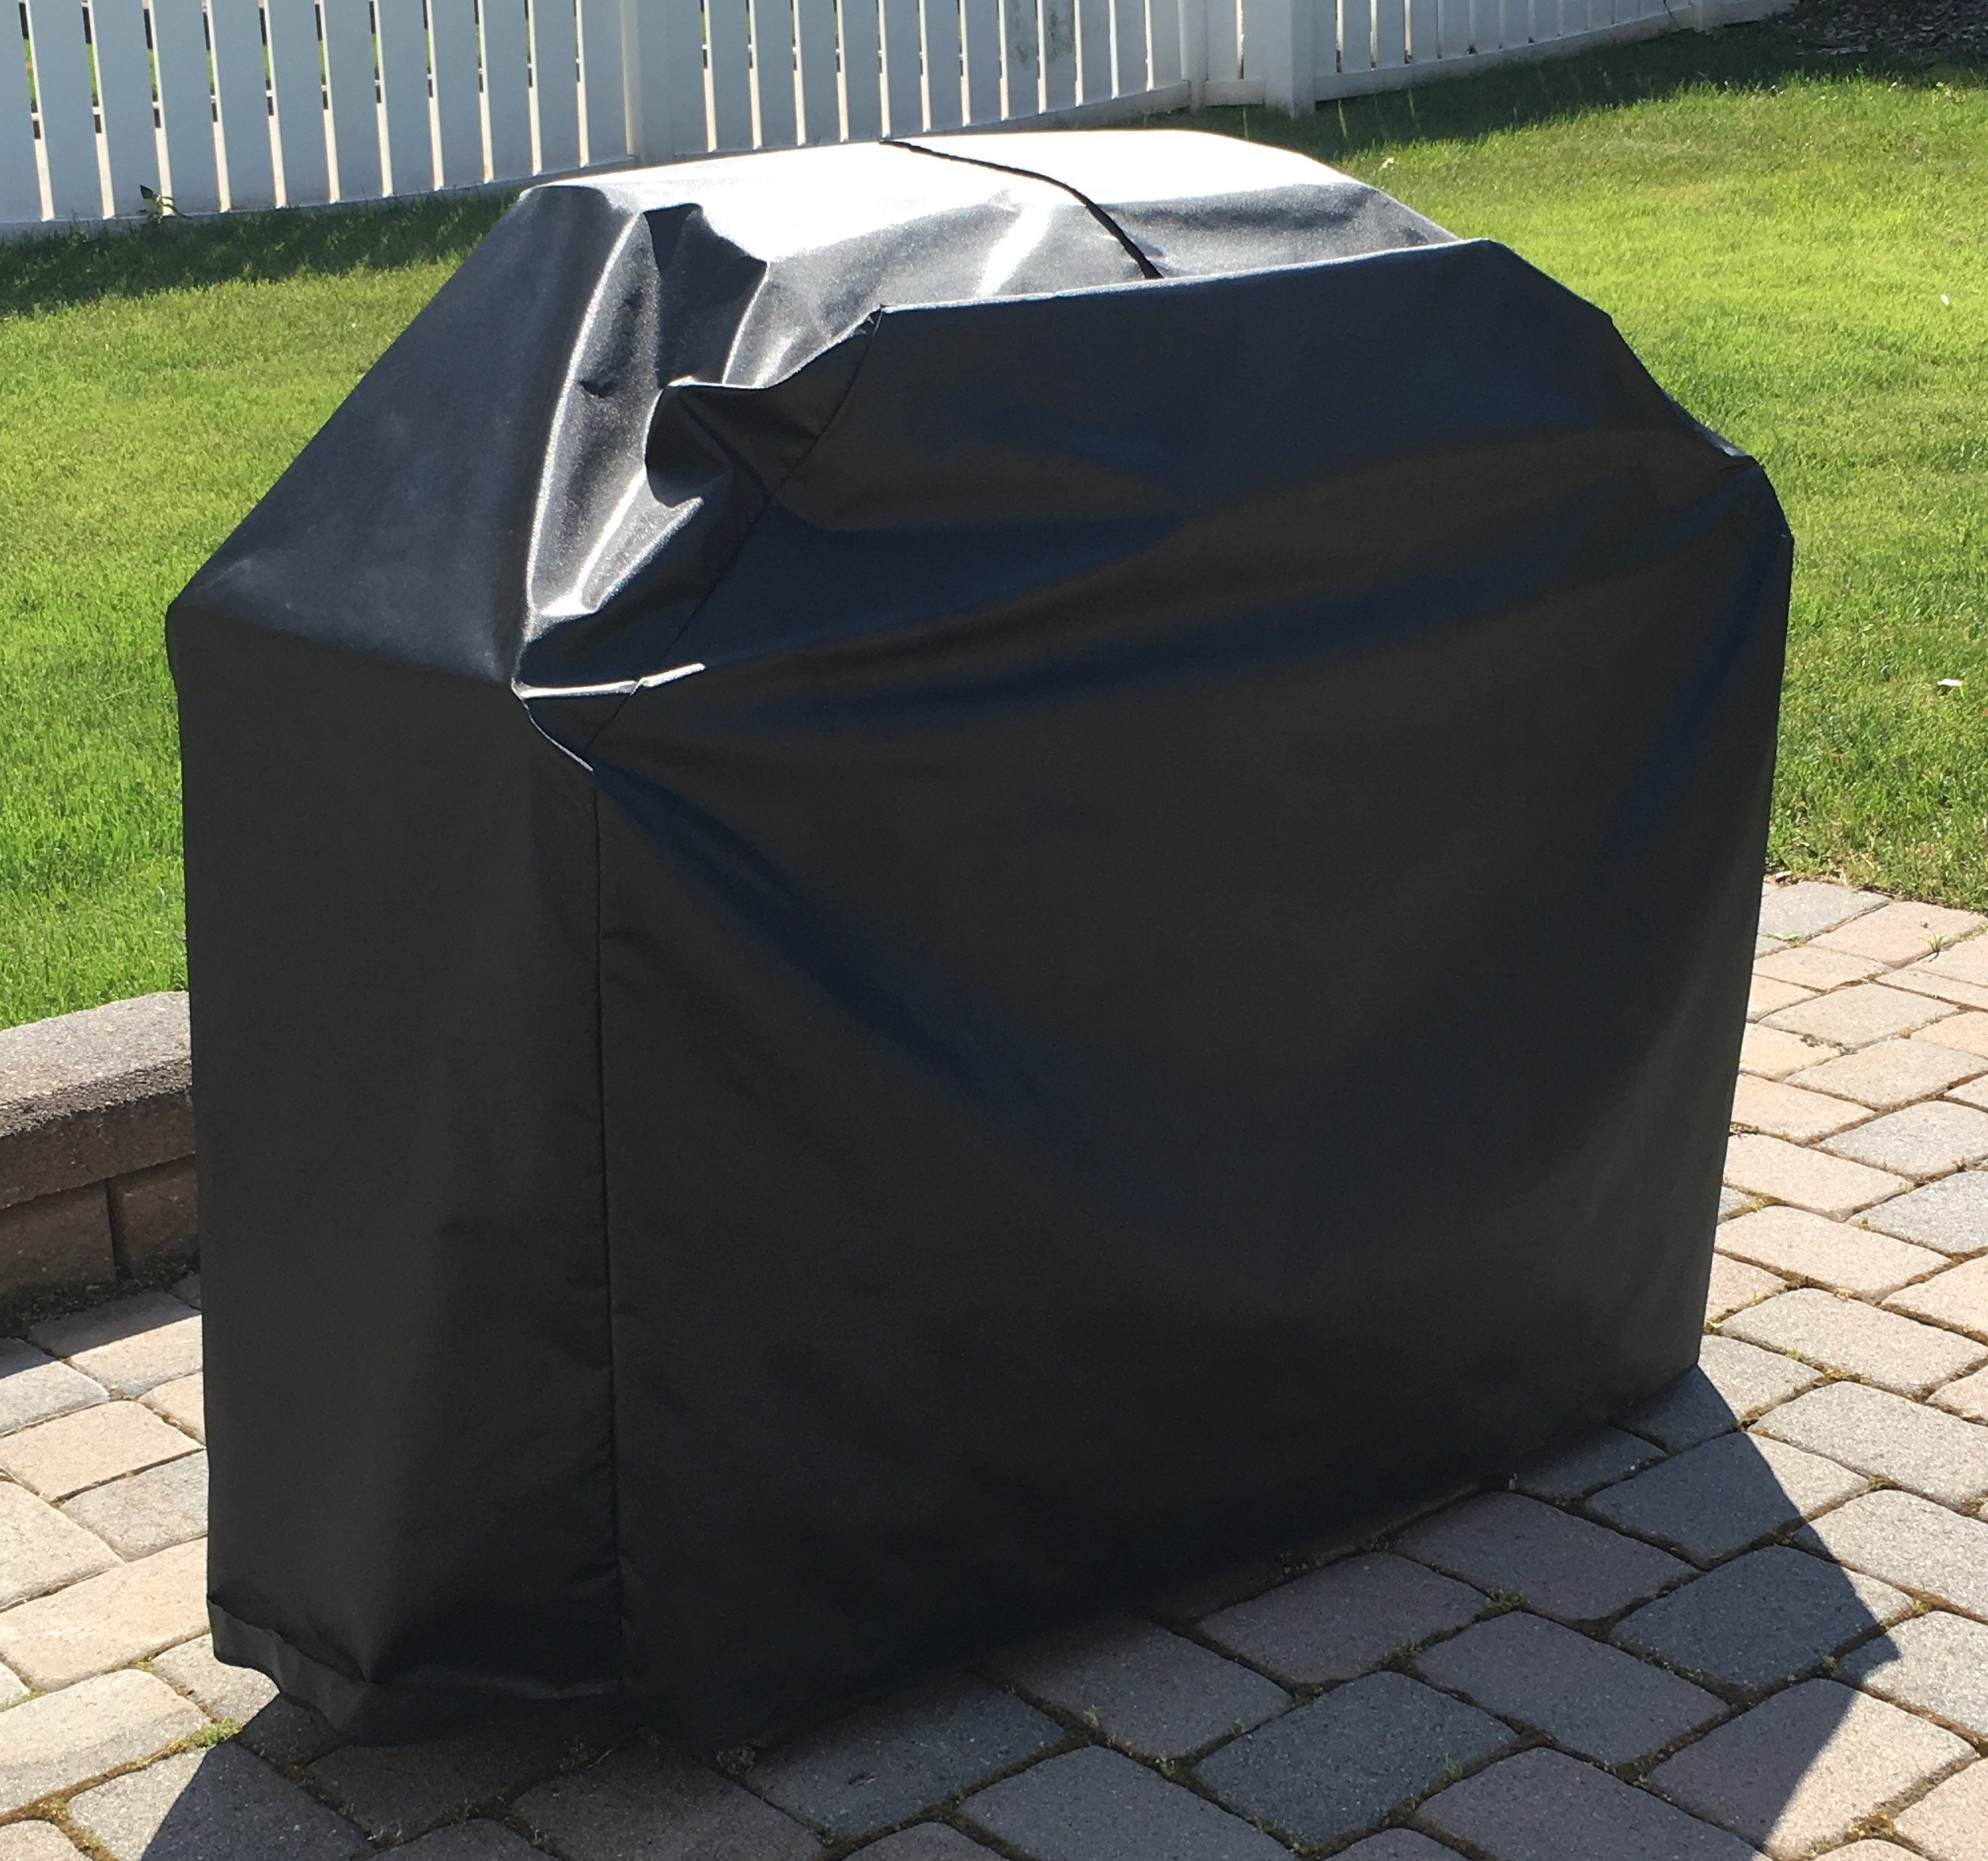 Comp Bind Technology Grill Cover for Weber Genesis II E-310 Gas Grill, Outdoor, Waterproof Black Grill Cover By 54''W x 29''D x 45''H